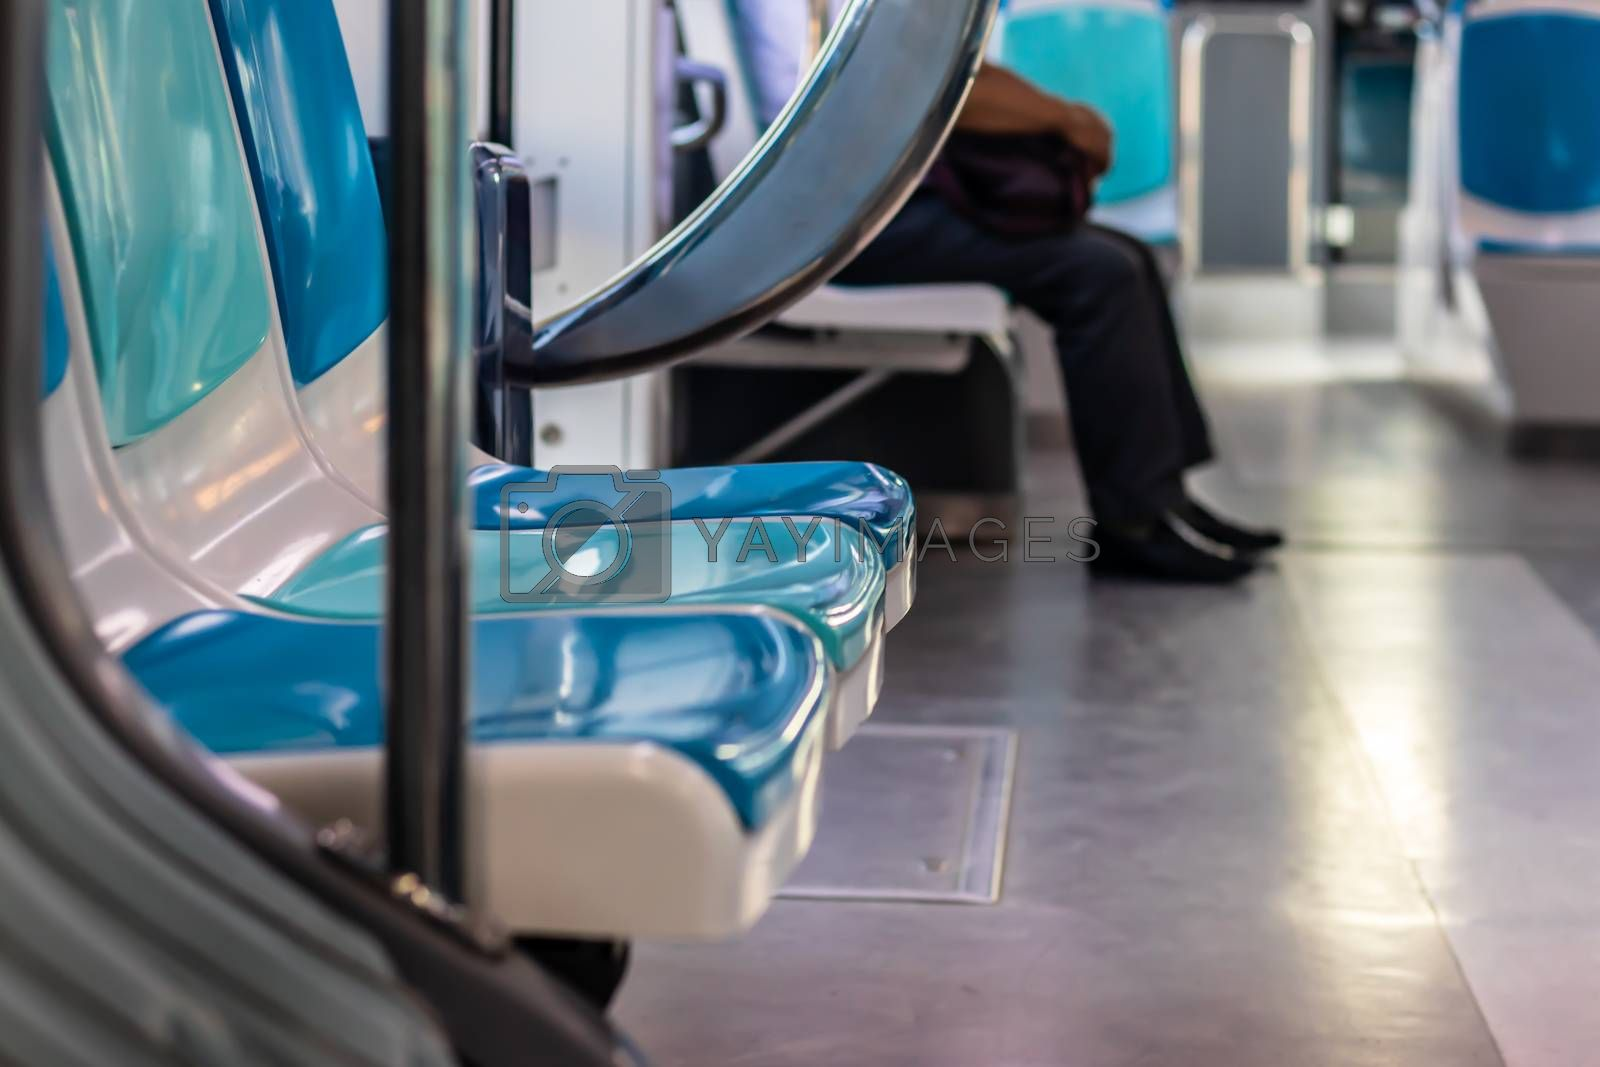 a closeup shoot from a tram with few peoples and empty seats - there is no face can be recognized. photo has taken at izmir/turkey.